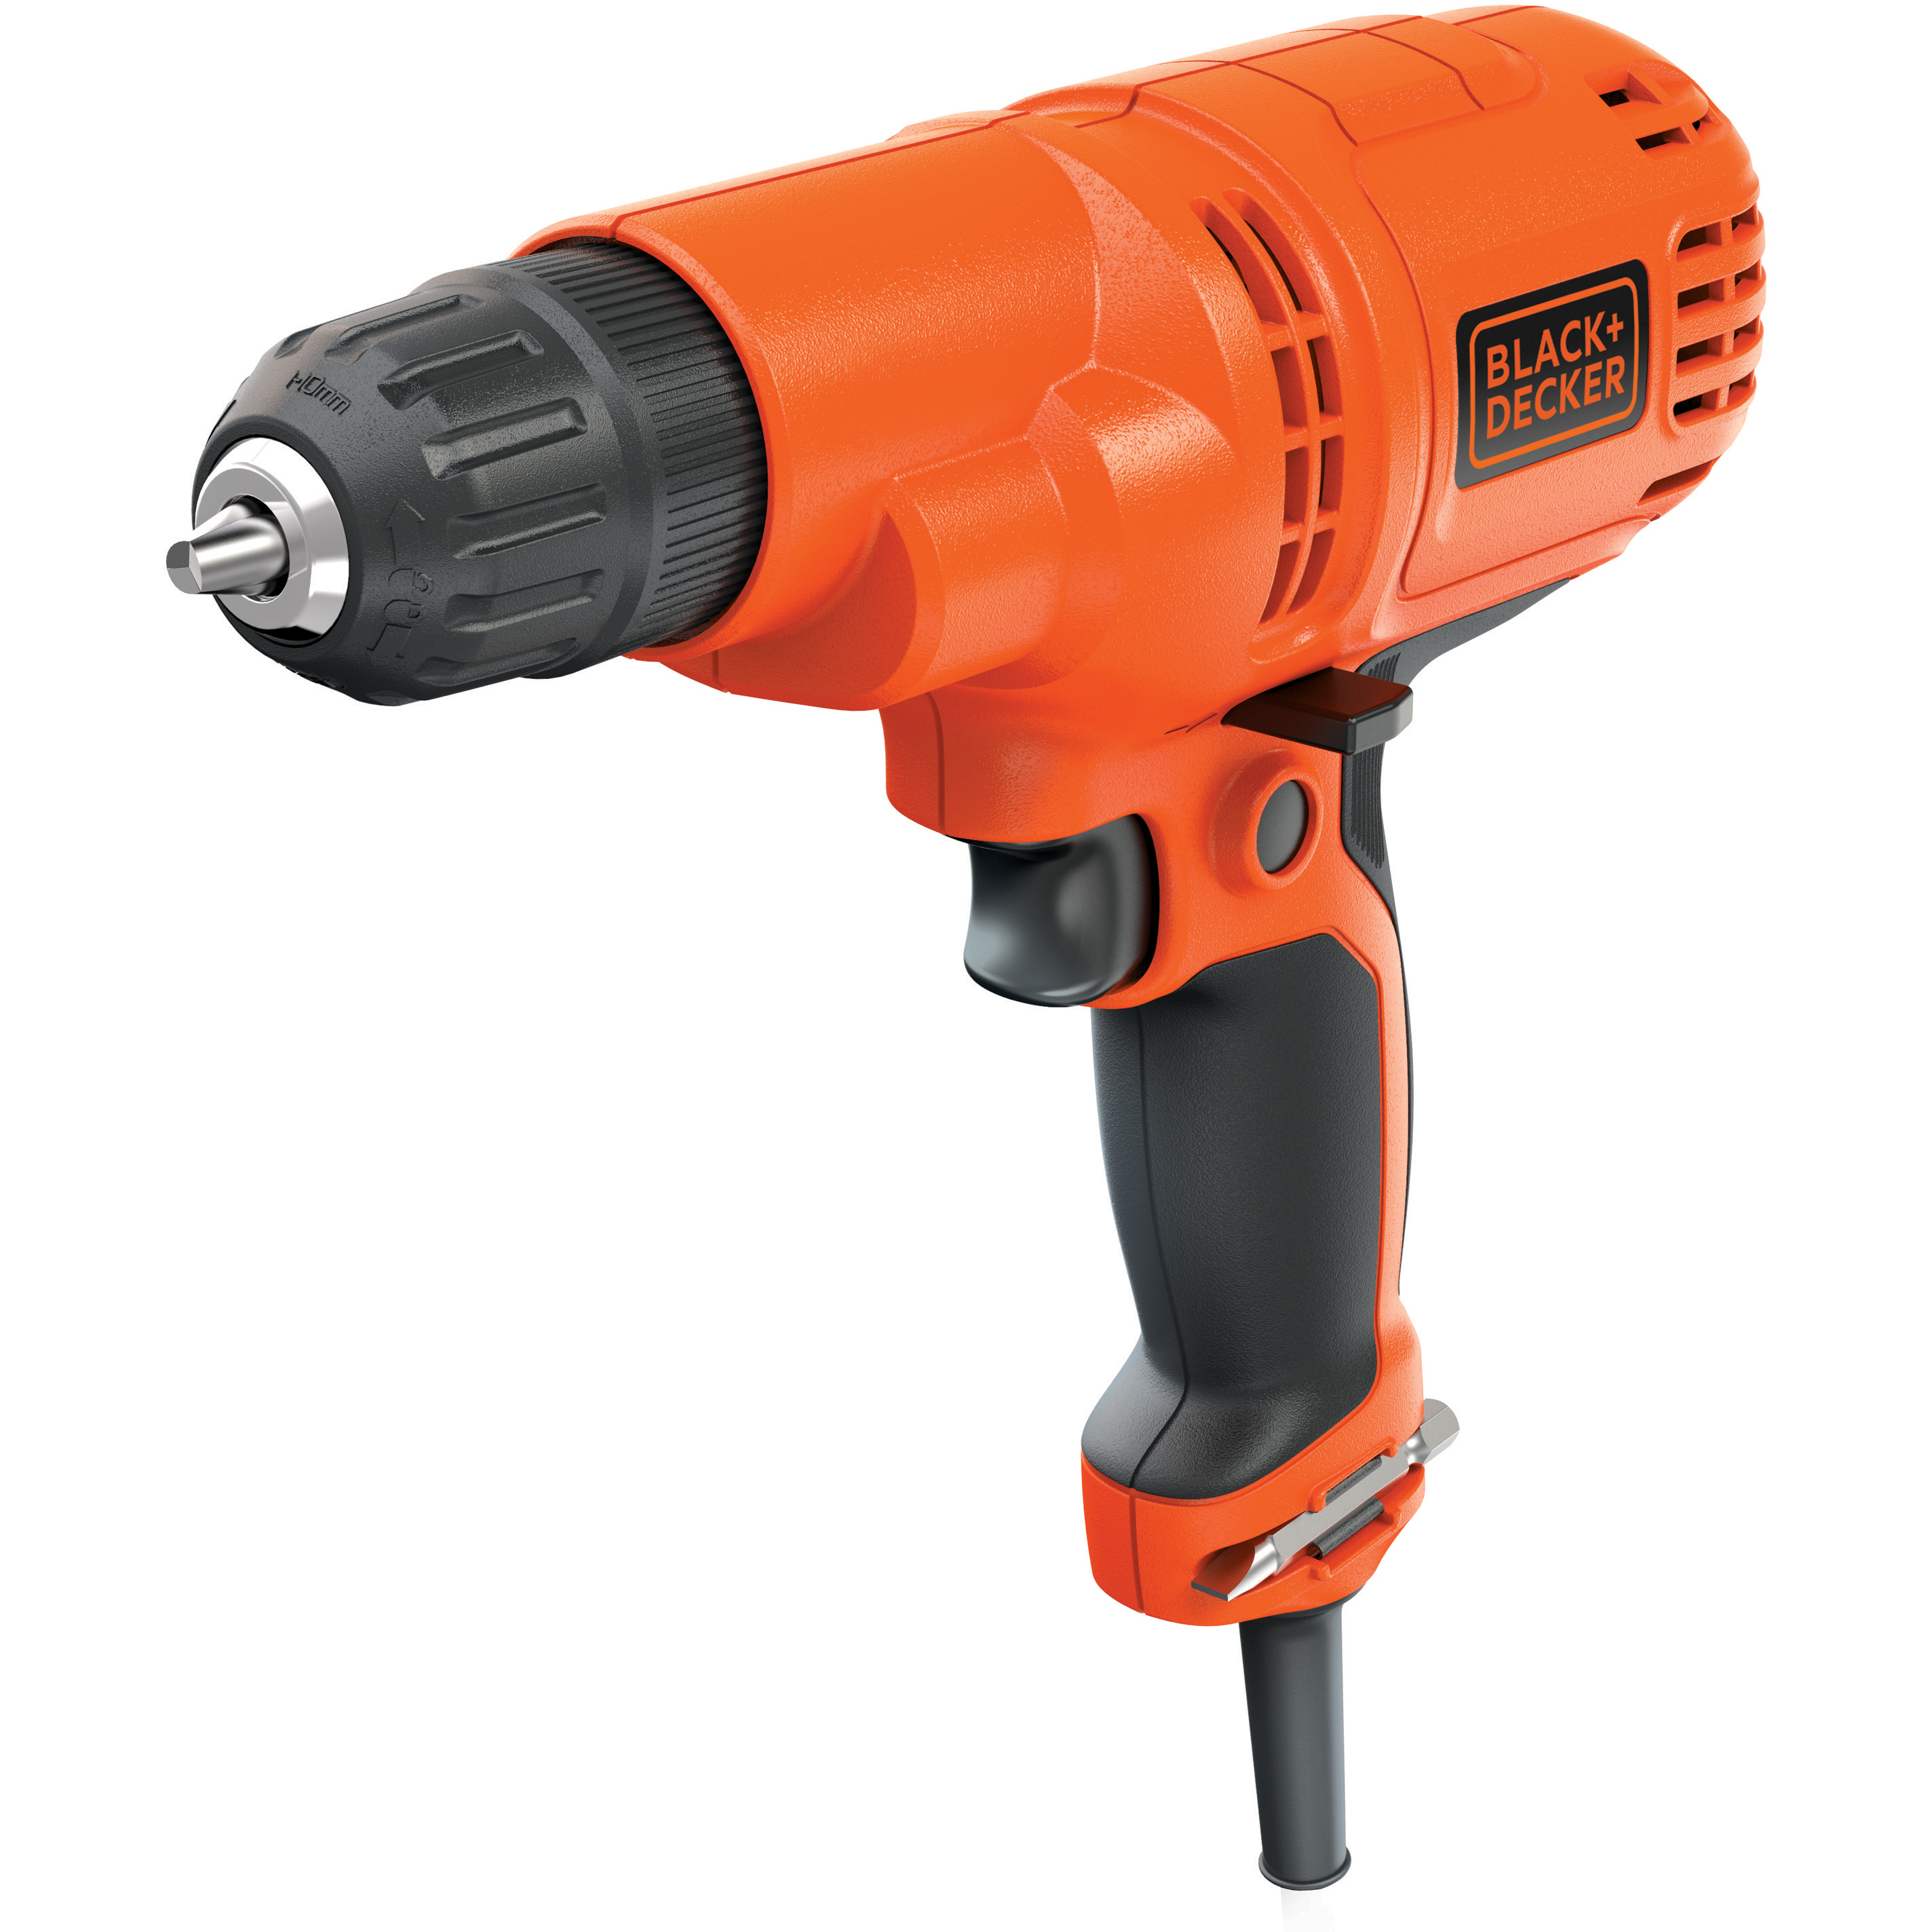 "Black & Decker DR260VA 5.2AMP 3 8"" Corded Drill with 10 Bonus Drill Bits by Stanley Black & Decker"